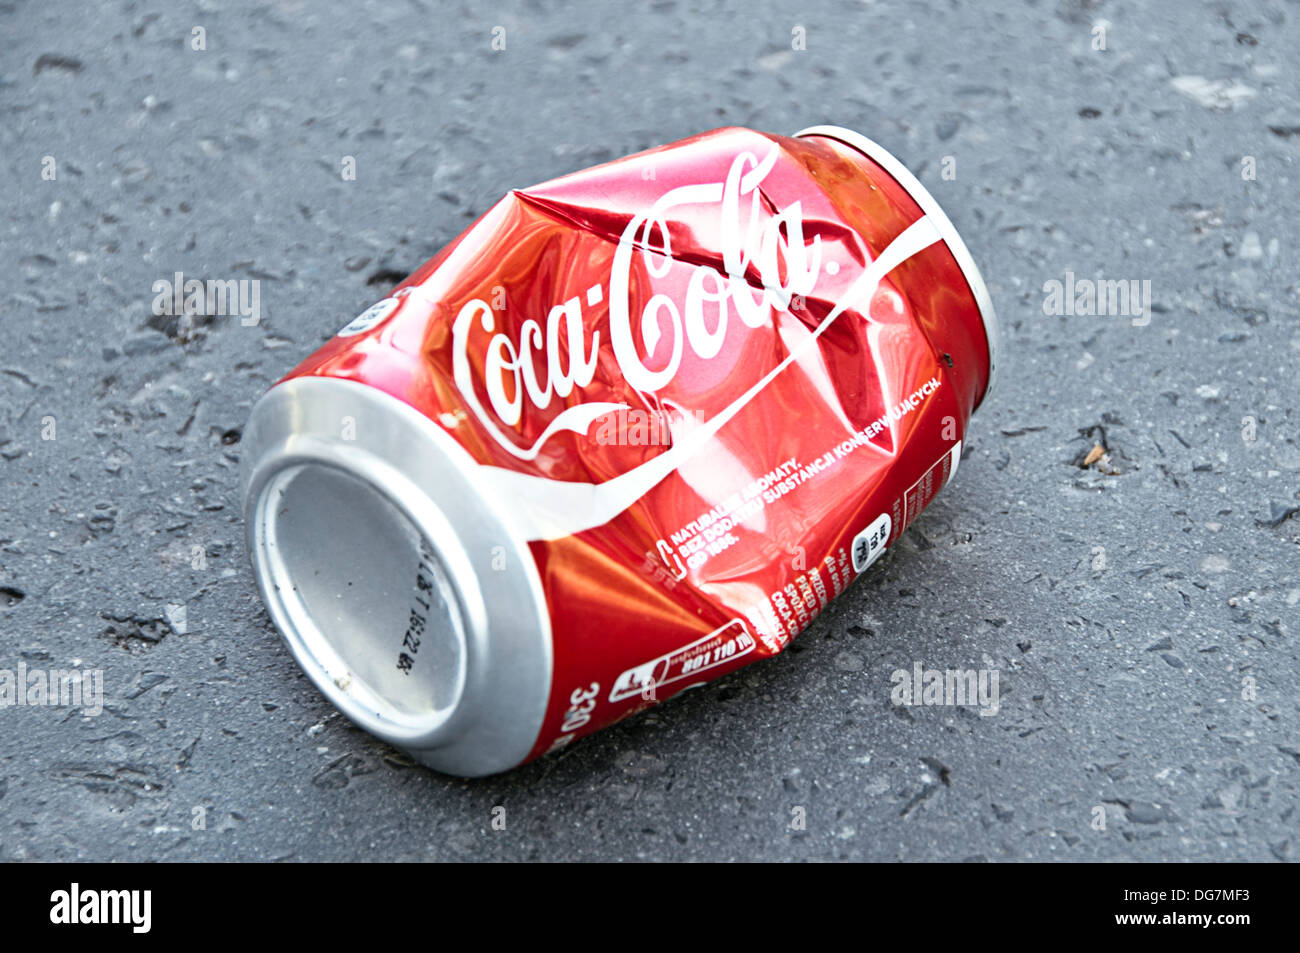 Coca Cola Can Crushed High Resolution Stock Photography and Images - Alamy